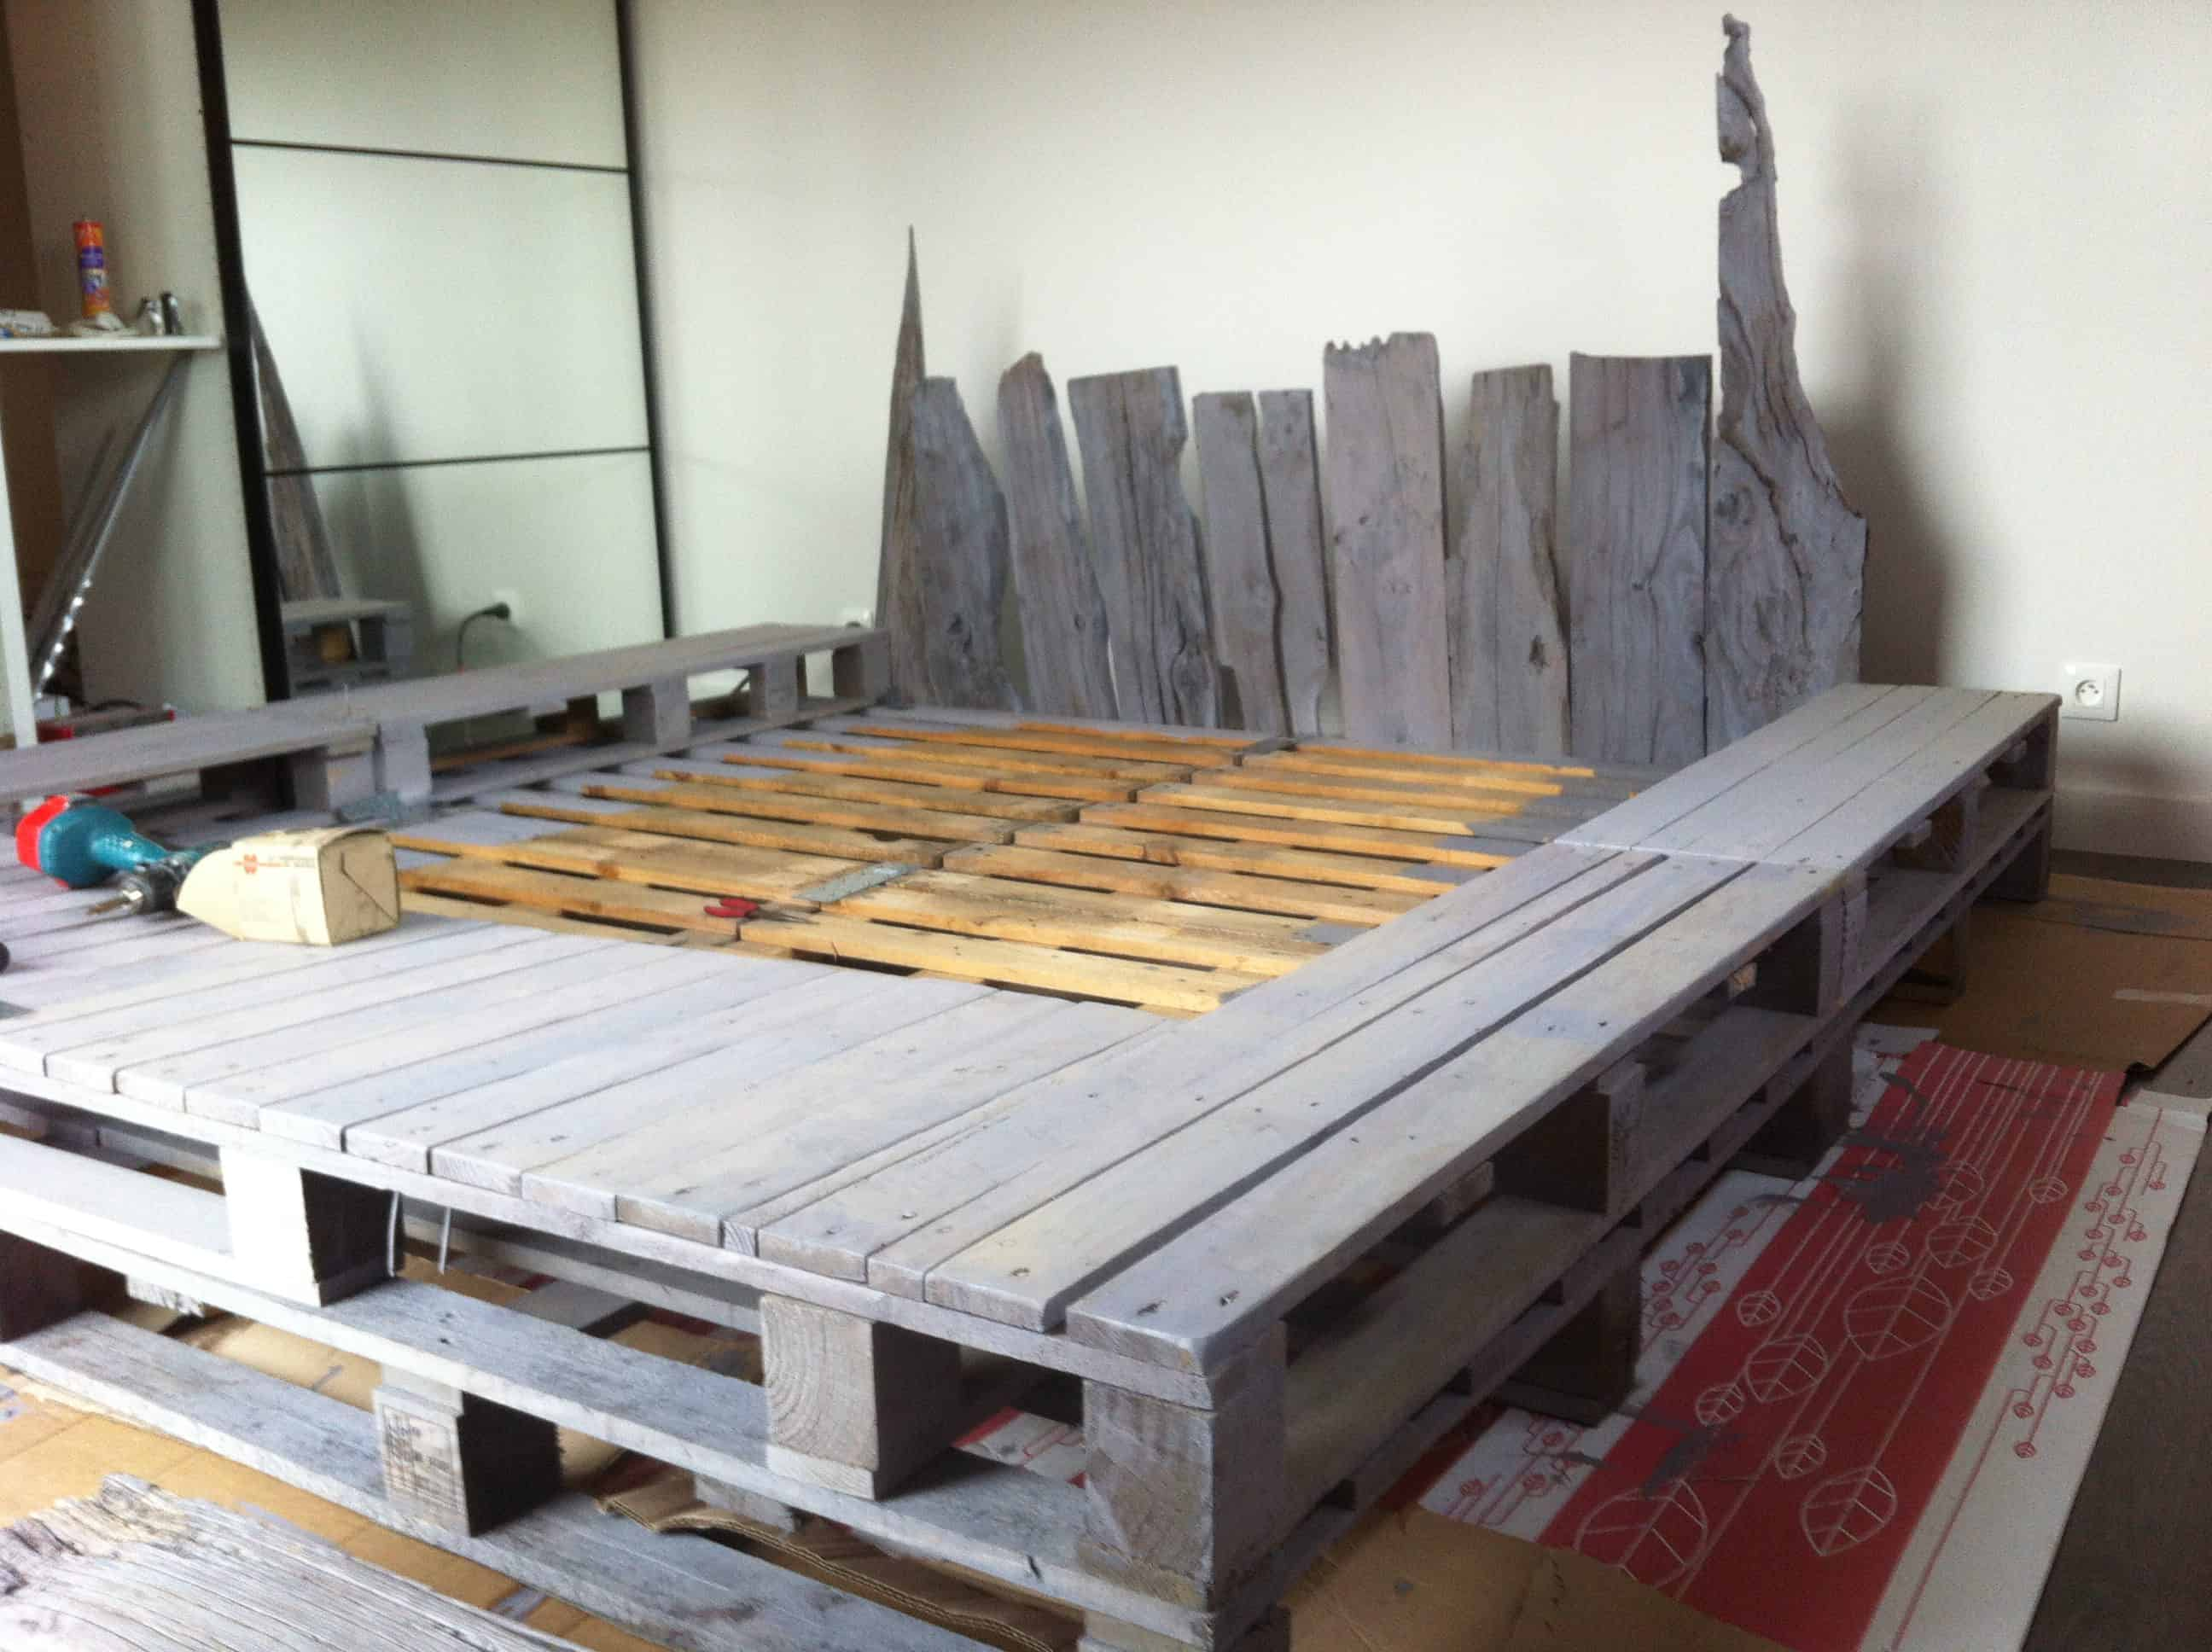 ... -becomes-headboard Pallet Bed • Pallet Ideas • 1001 Pallets